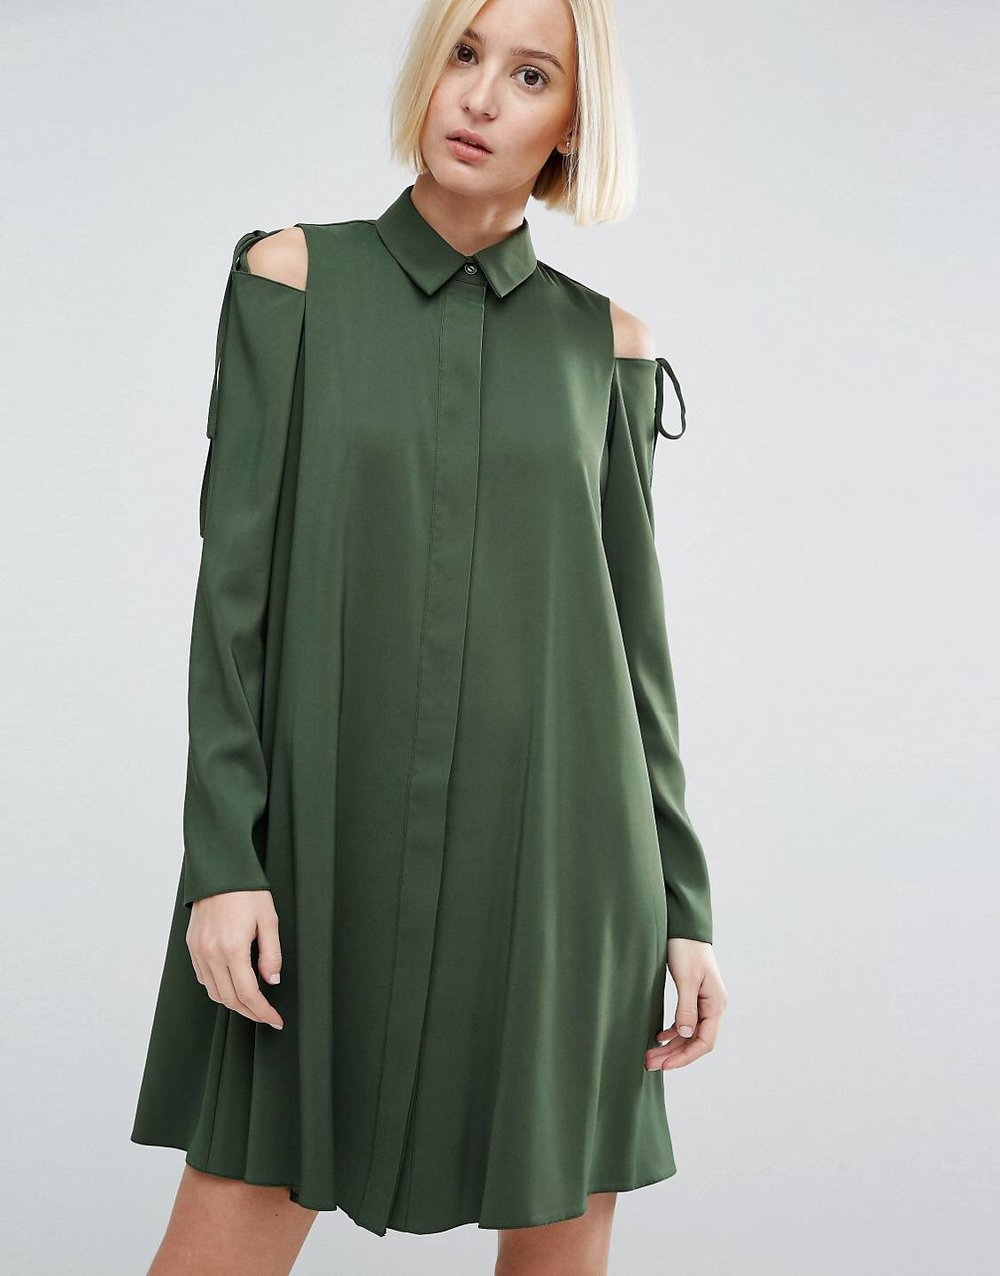 £16 ASOS Cold Shoulder Dress - I seem to be stuck in modest top land. It's hard to escape.